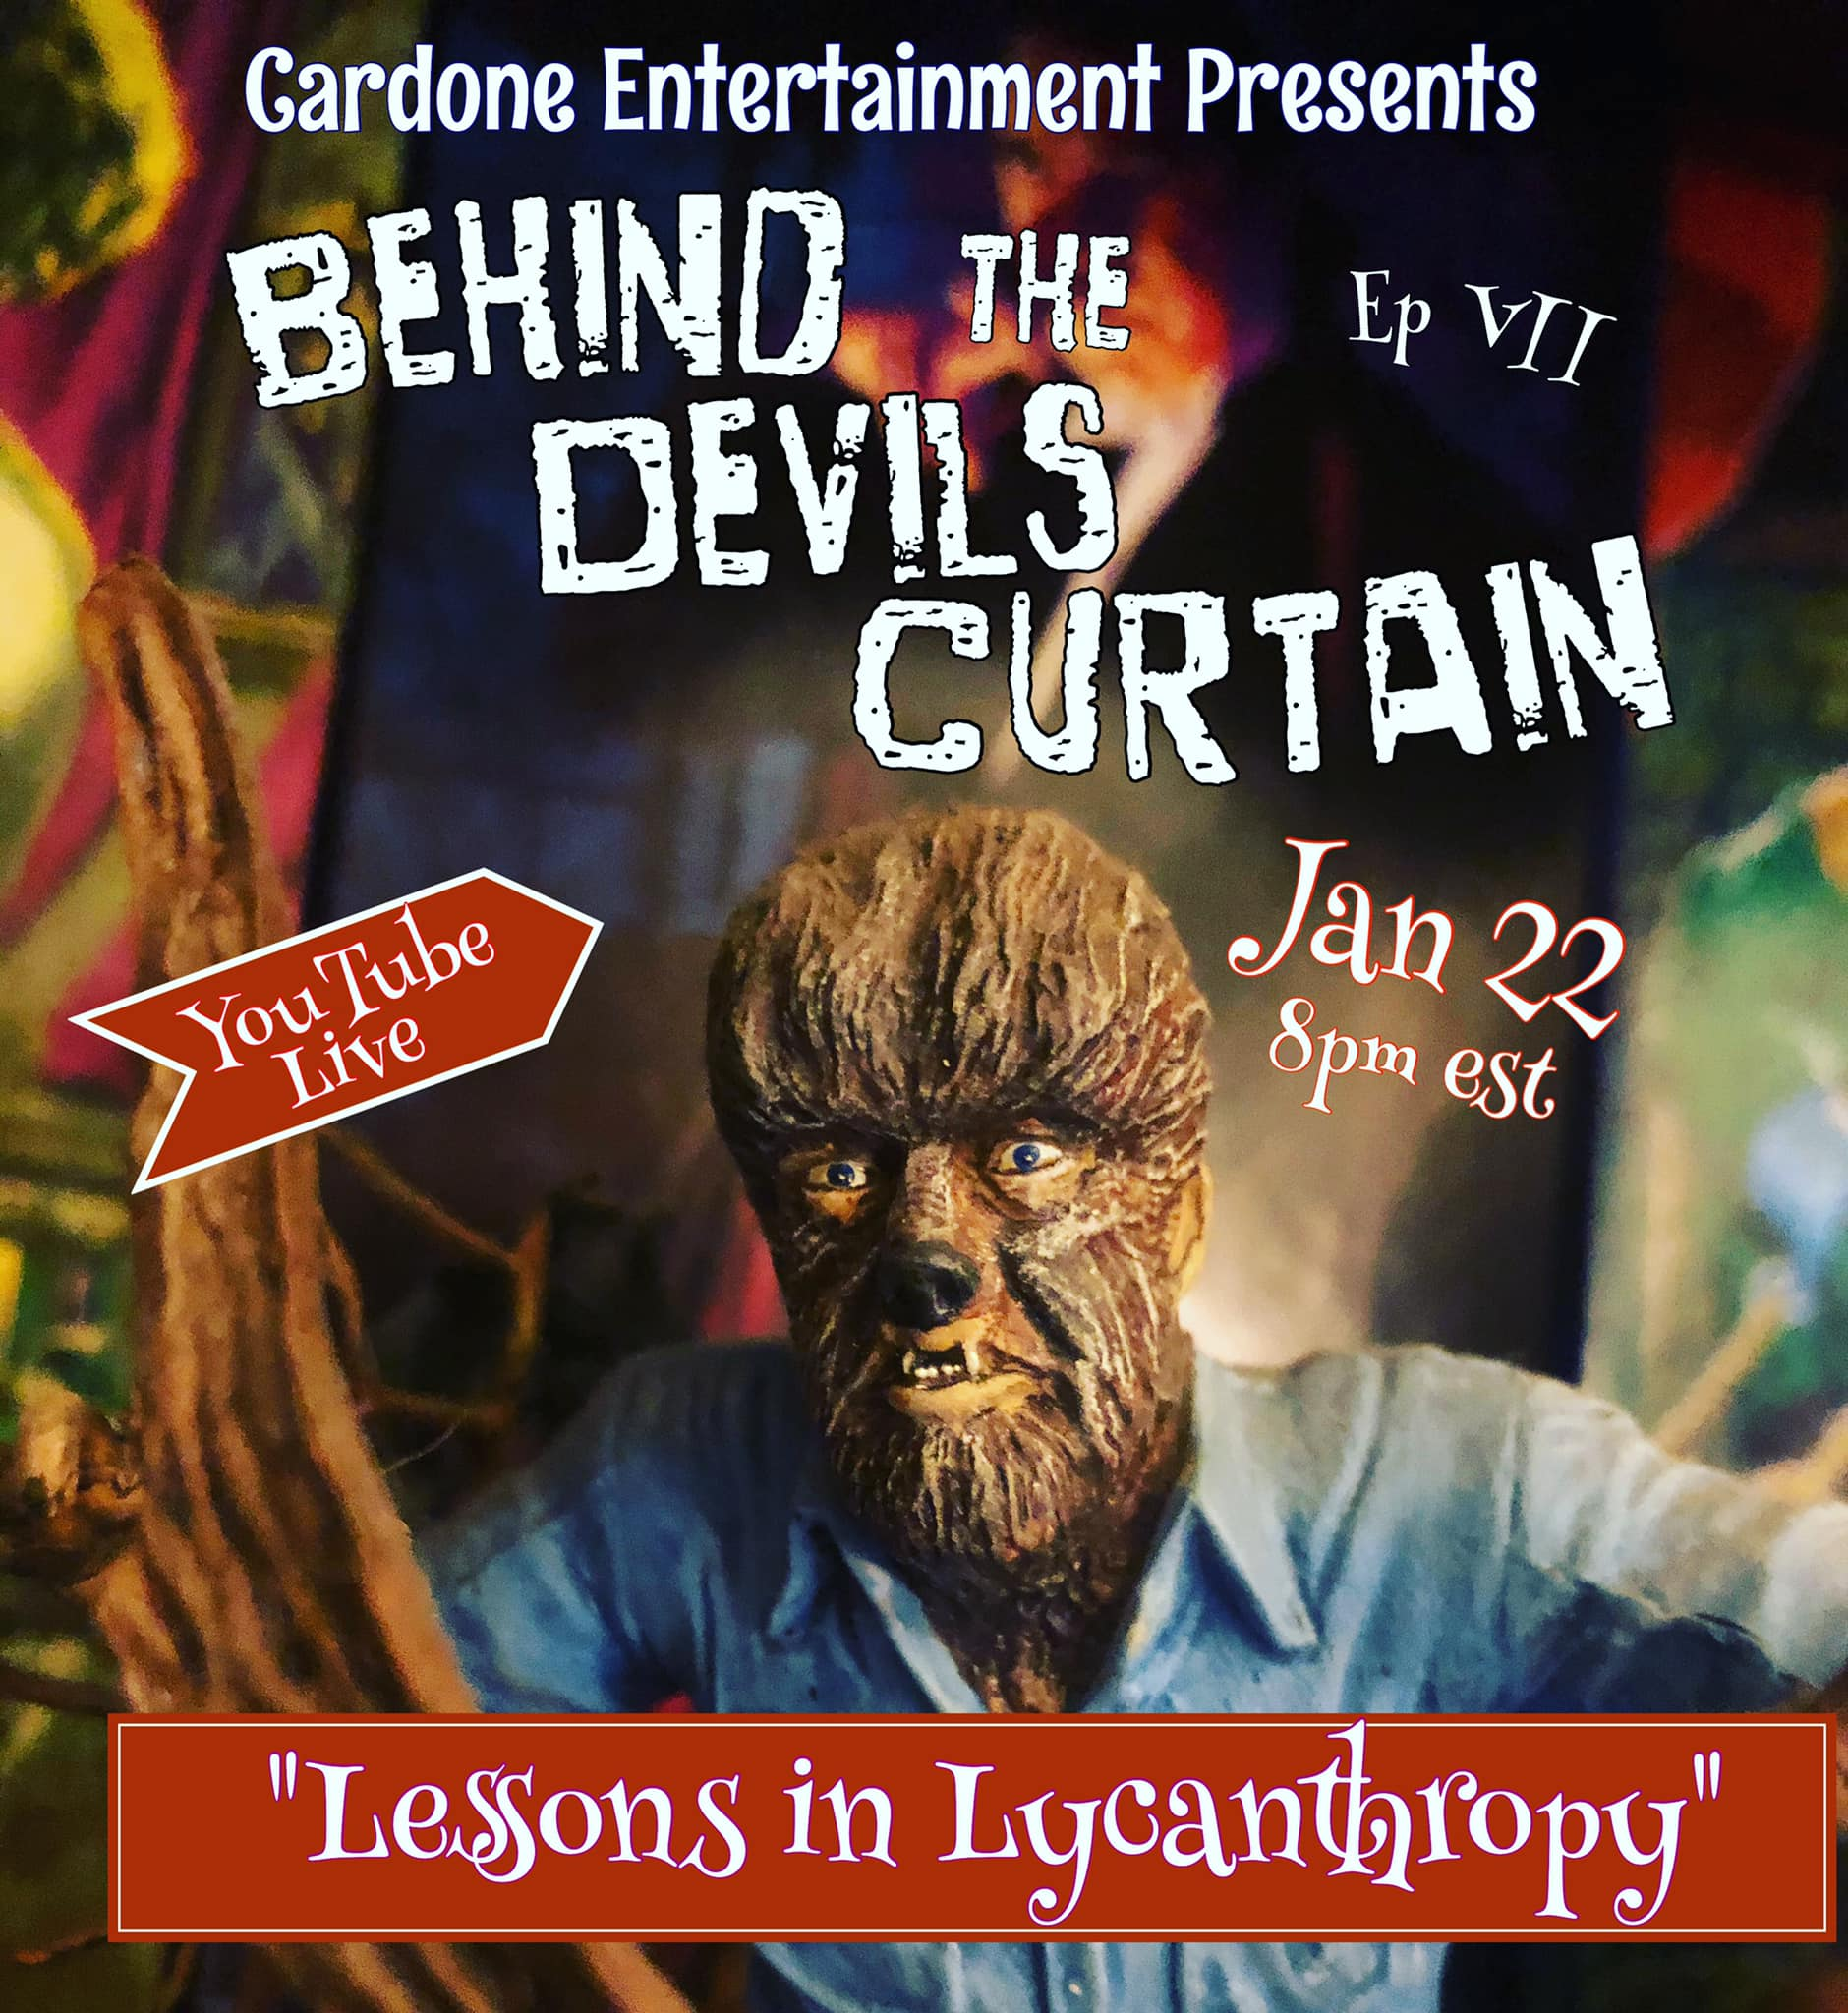 CARDONE—Behind the Devil's Curtain Episode VII: Lessons in Lycanthropy